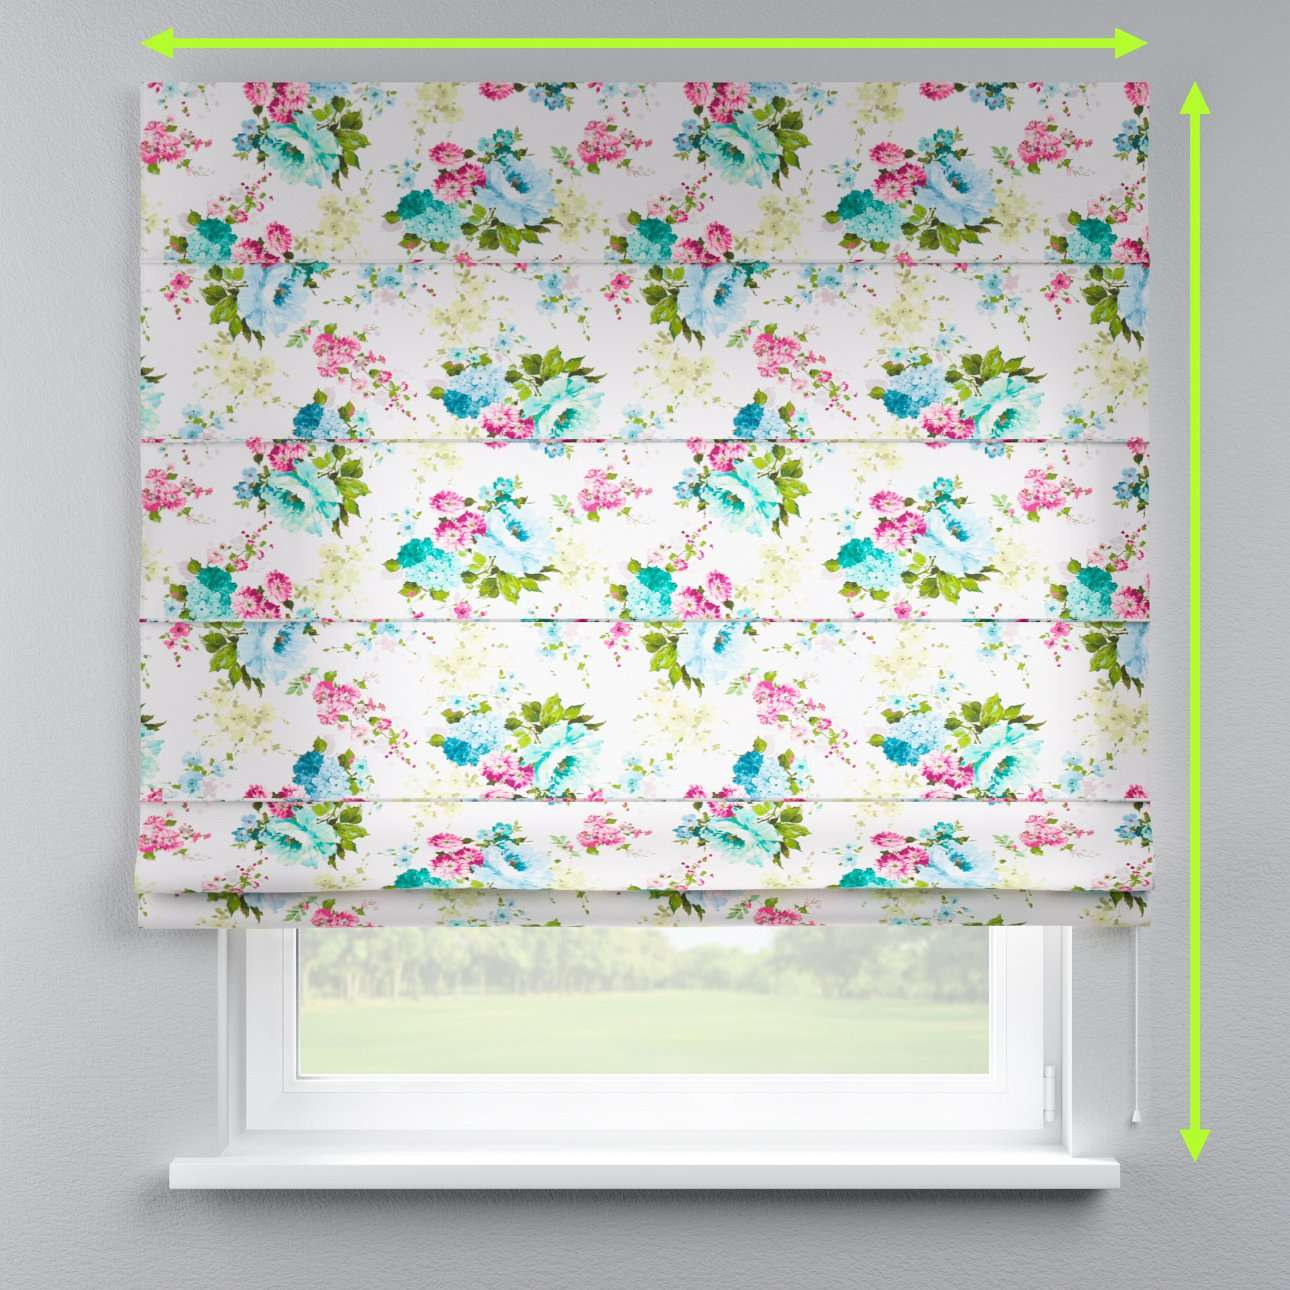 Capri roman blind in collection Monet, fabric: 140-02